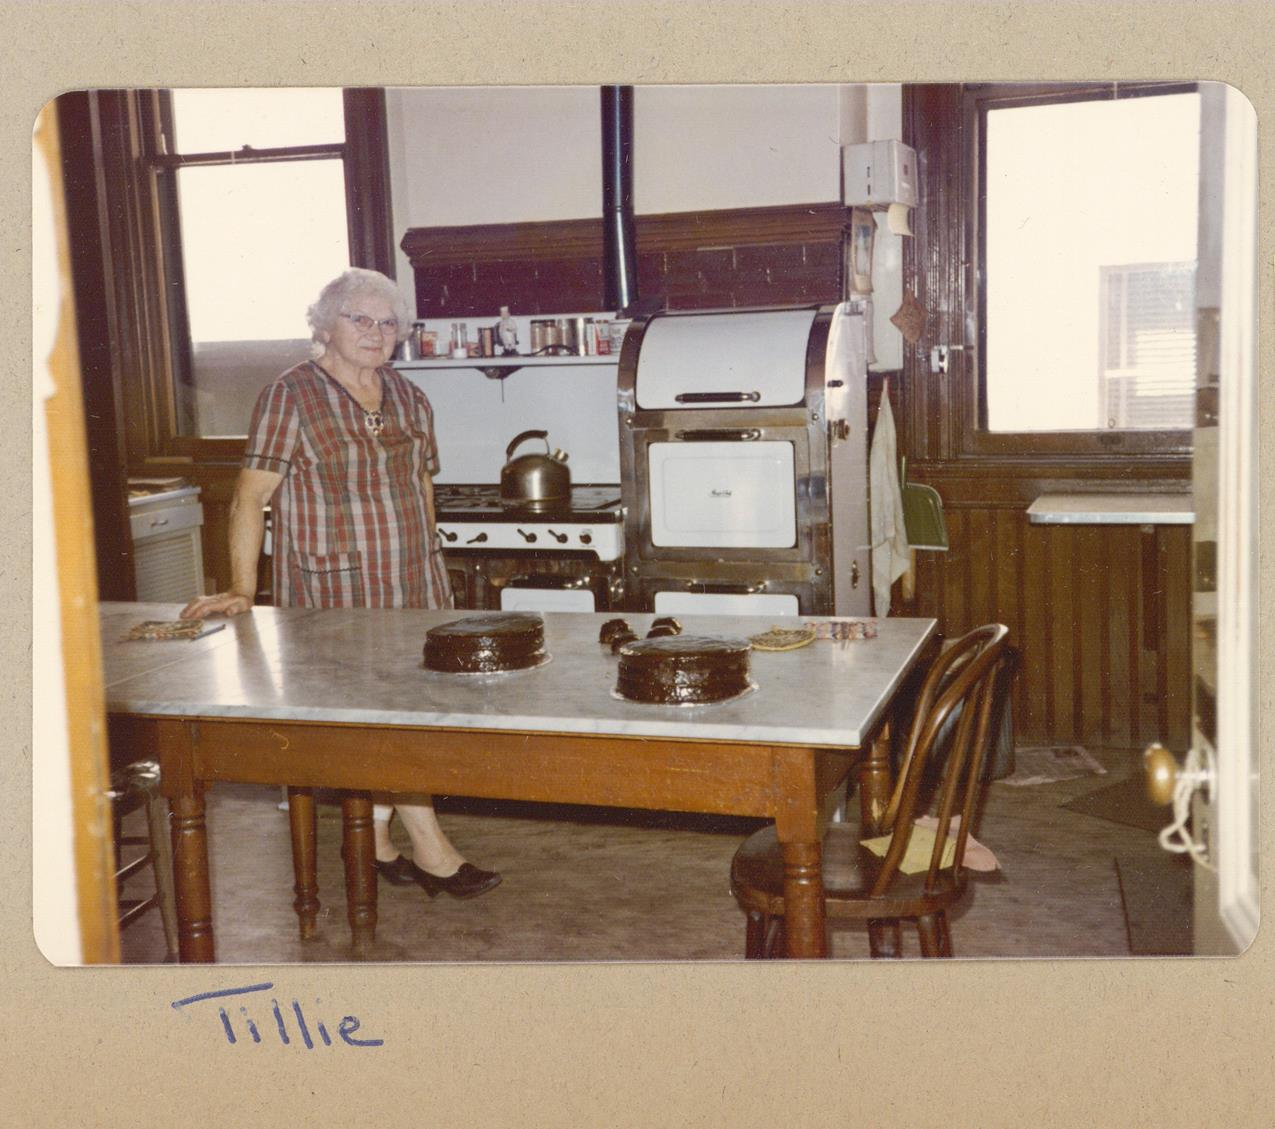 Tillie in HLH kitchen, 1972